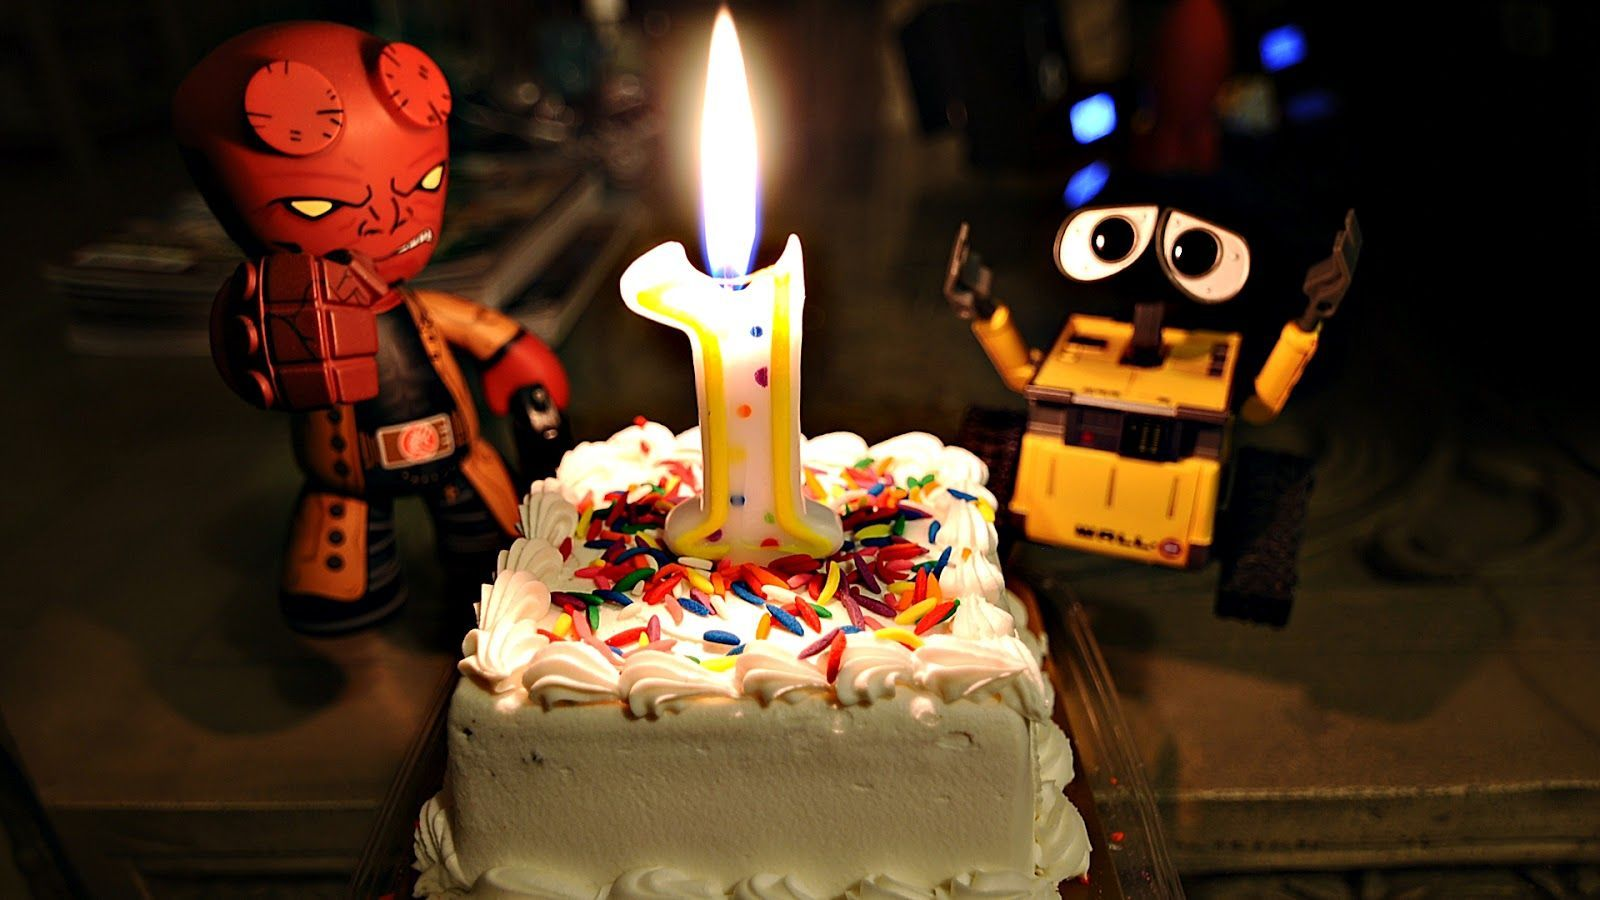 High Definition Creative Funny Happy Birthday Pictures Hd Wallpaper Cake 3d 1600x900 Wallpaper Teahub Io